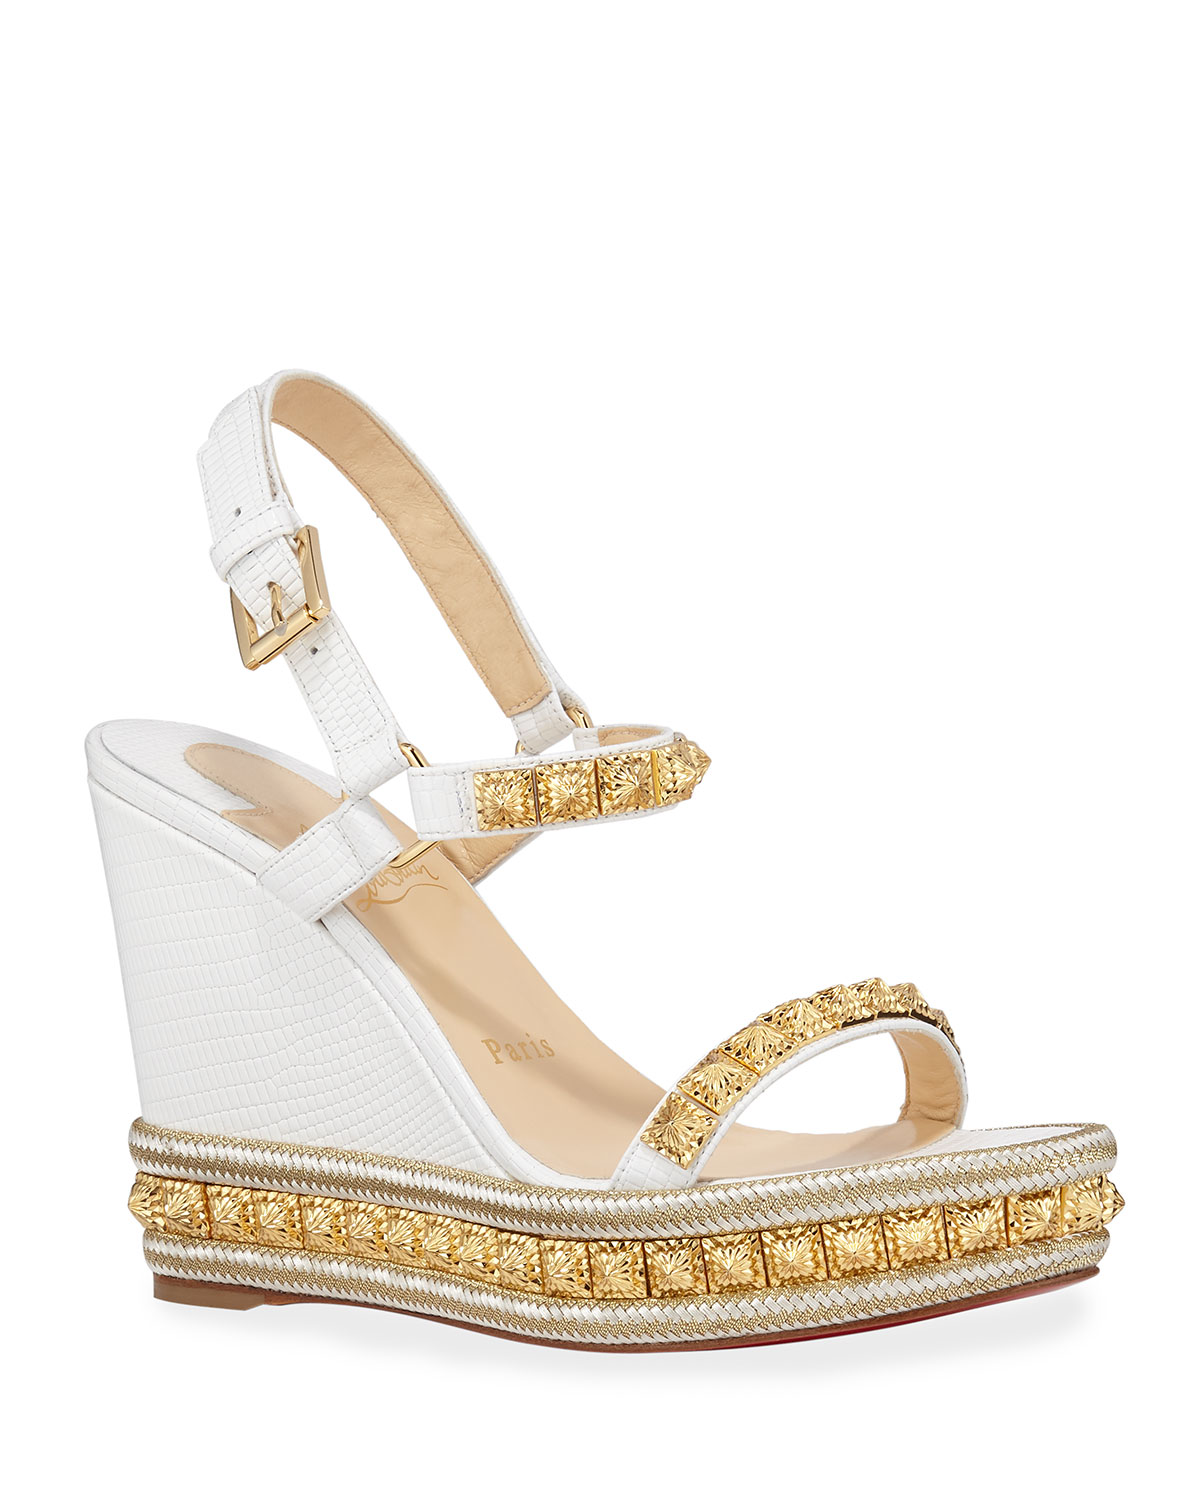 Pyraclou Studded Wedge Red Sole Espadrilles